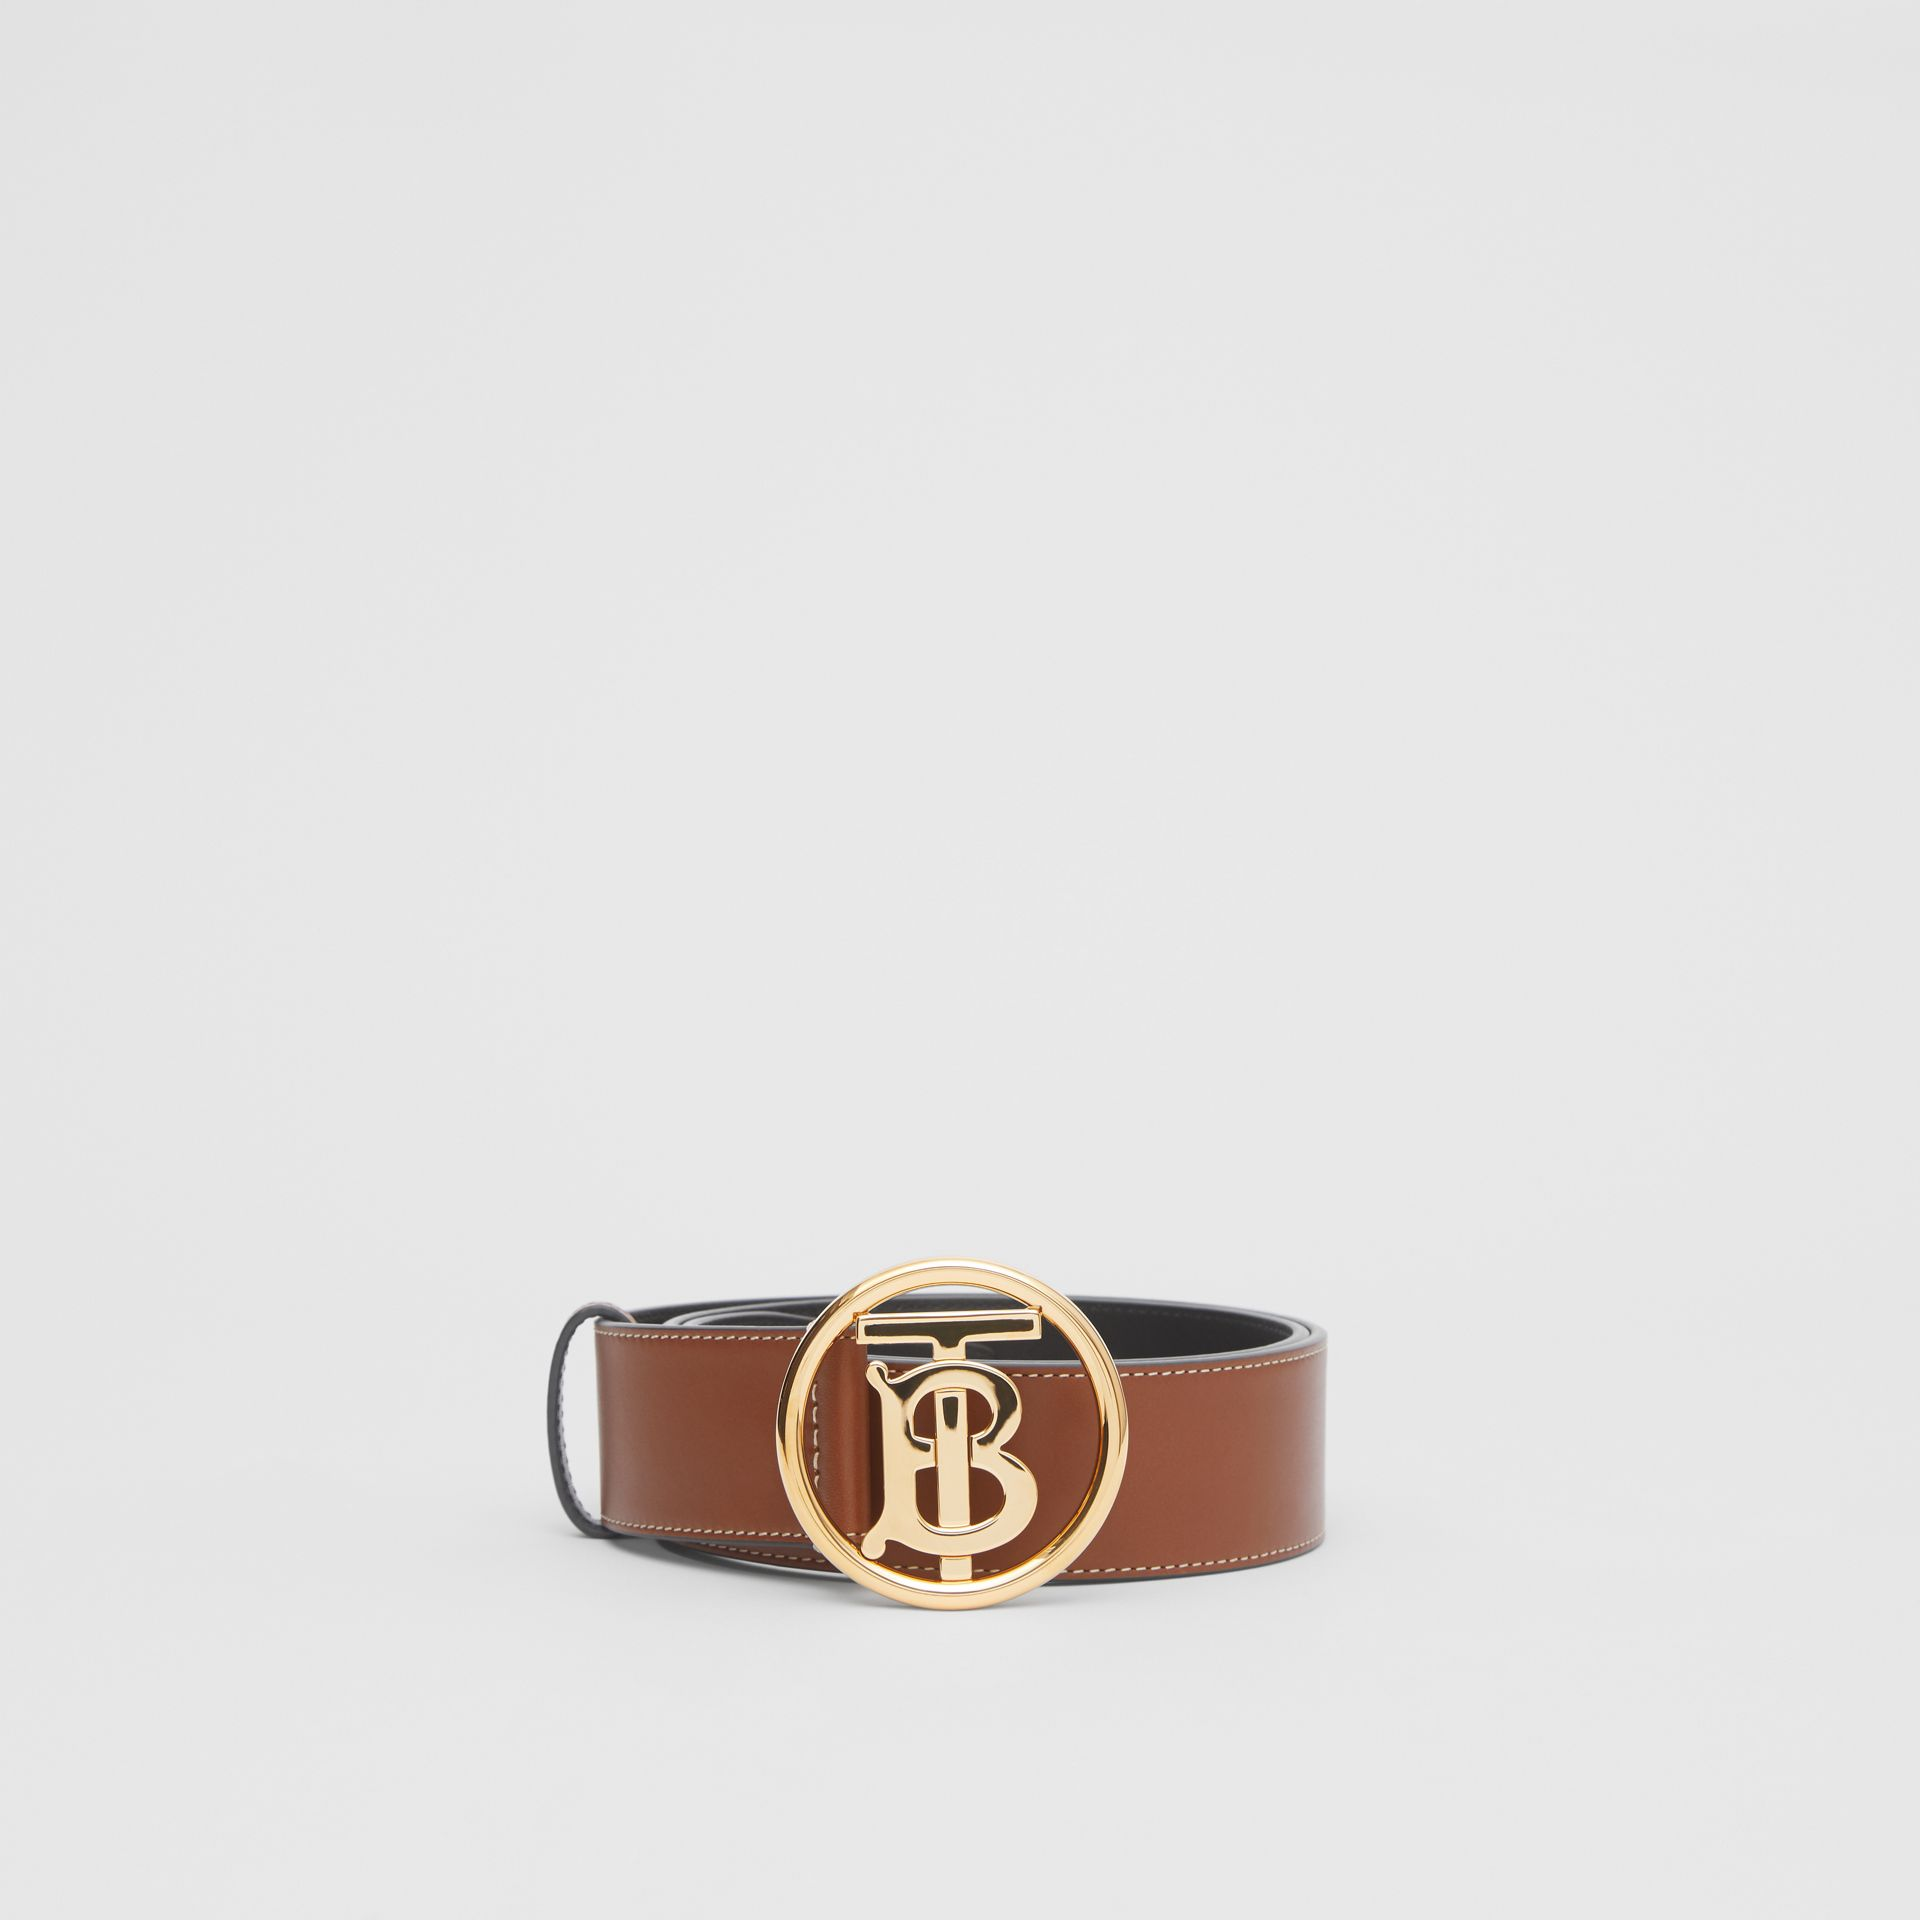 Monogram Motif Topstitched Leather Belt in Tan - Men | Burberry United Kingdom - gallery image 2